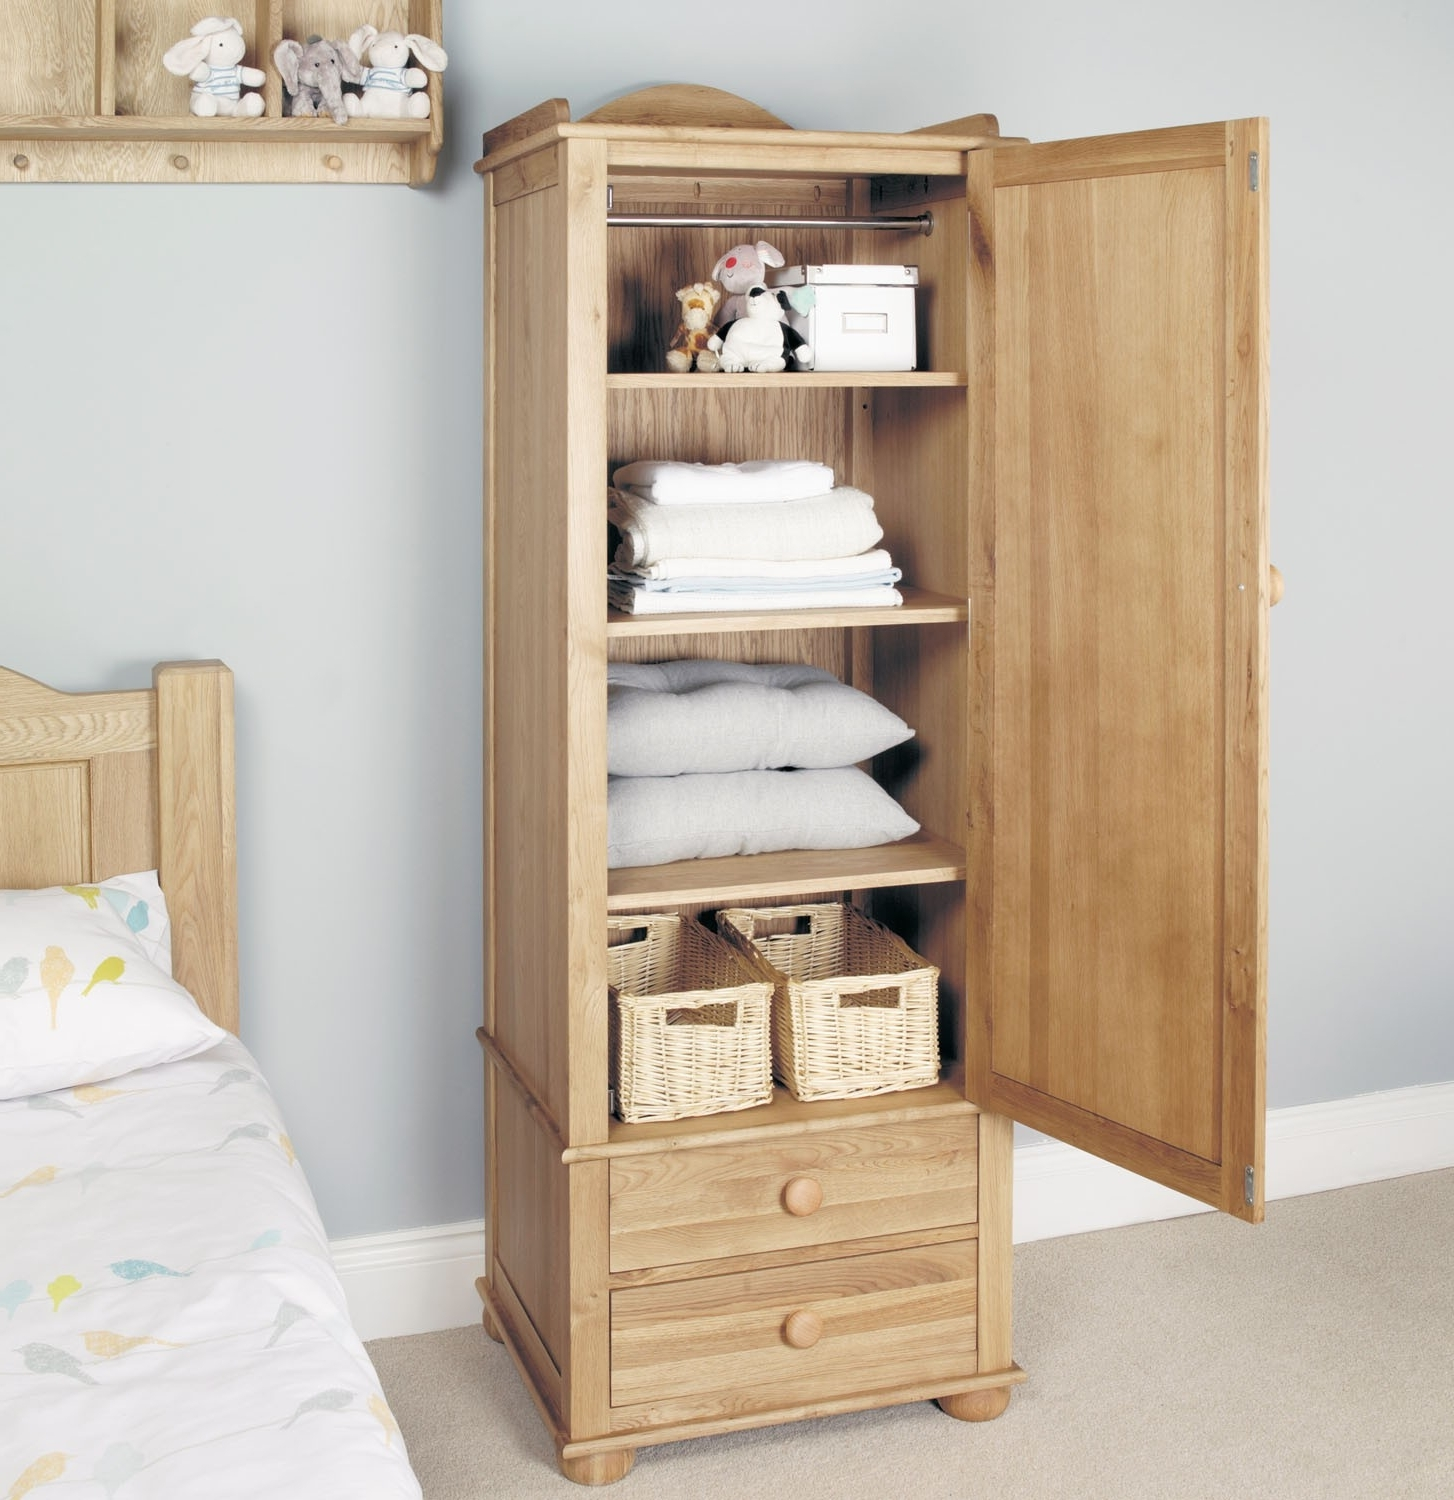 Famous Amelie Oak Childrens Single Wardrobe – Children's Bedroom Within Single Door Pine Wardrobes (View 11 of 15)